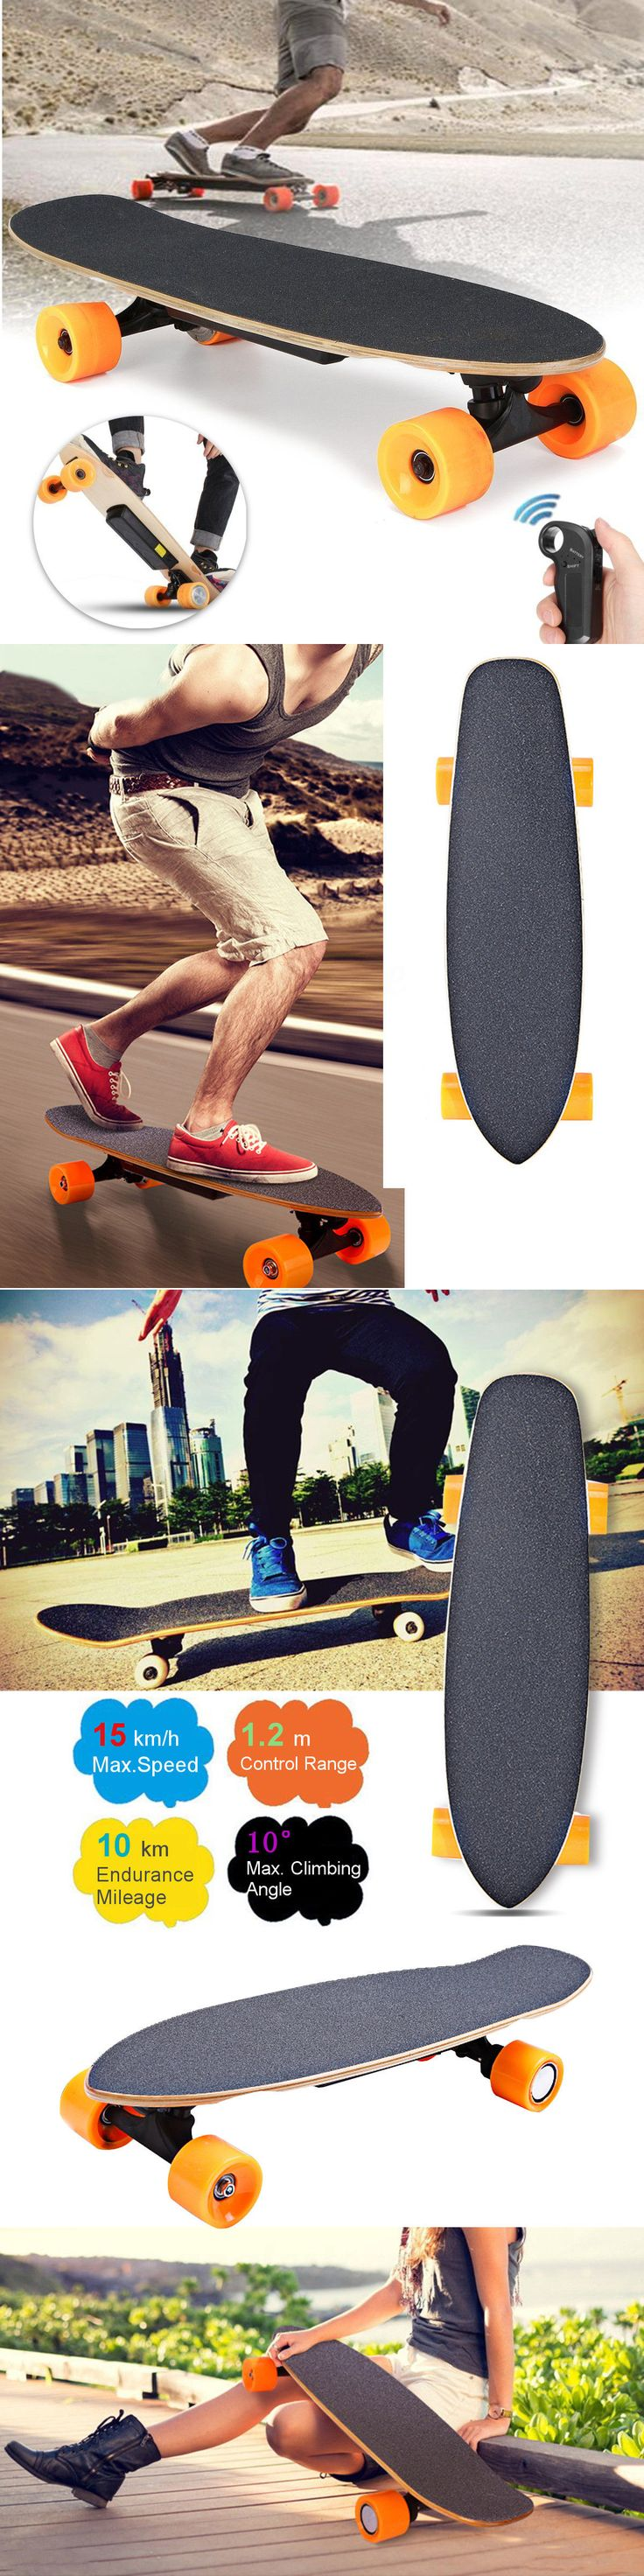 Skateboards-Complete 16264: 250W Electric Skateboard Longboard Skate Board Scooter Wireless Remote Control -> BUY IT NOW ONLY: $142.55 on eBay!